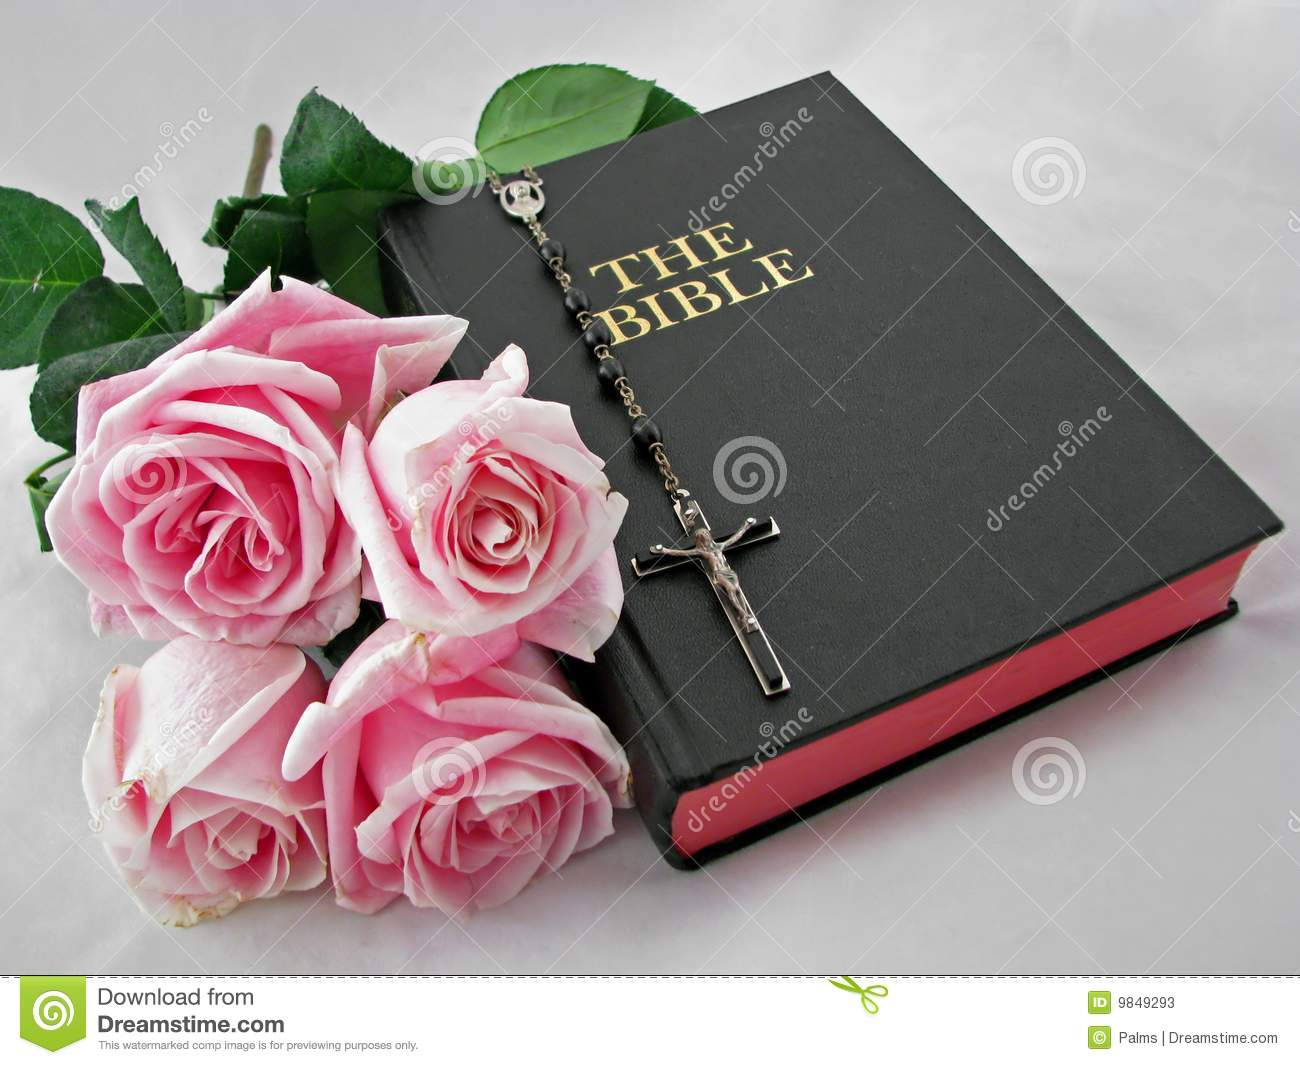 catholic single women in flowery branch Oakwood baptist church a place to grow learn more a place to grow oakwood baptist church is located at 4263 martin rd flowery branch, ga we are an independent baptist church in hall.